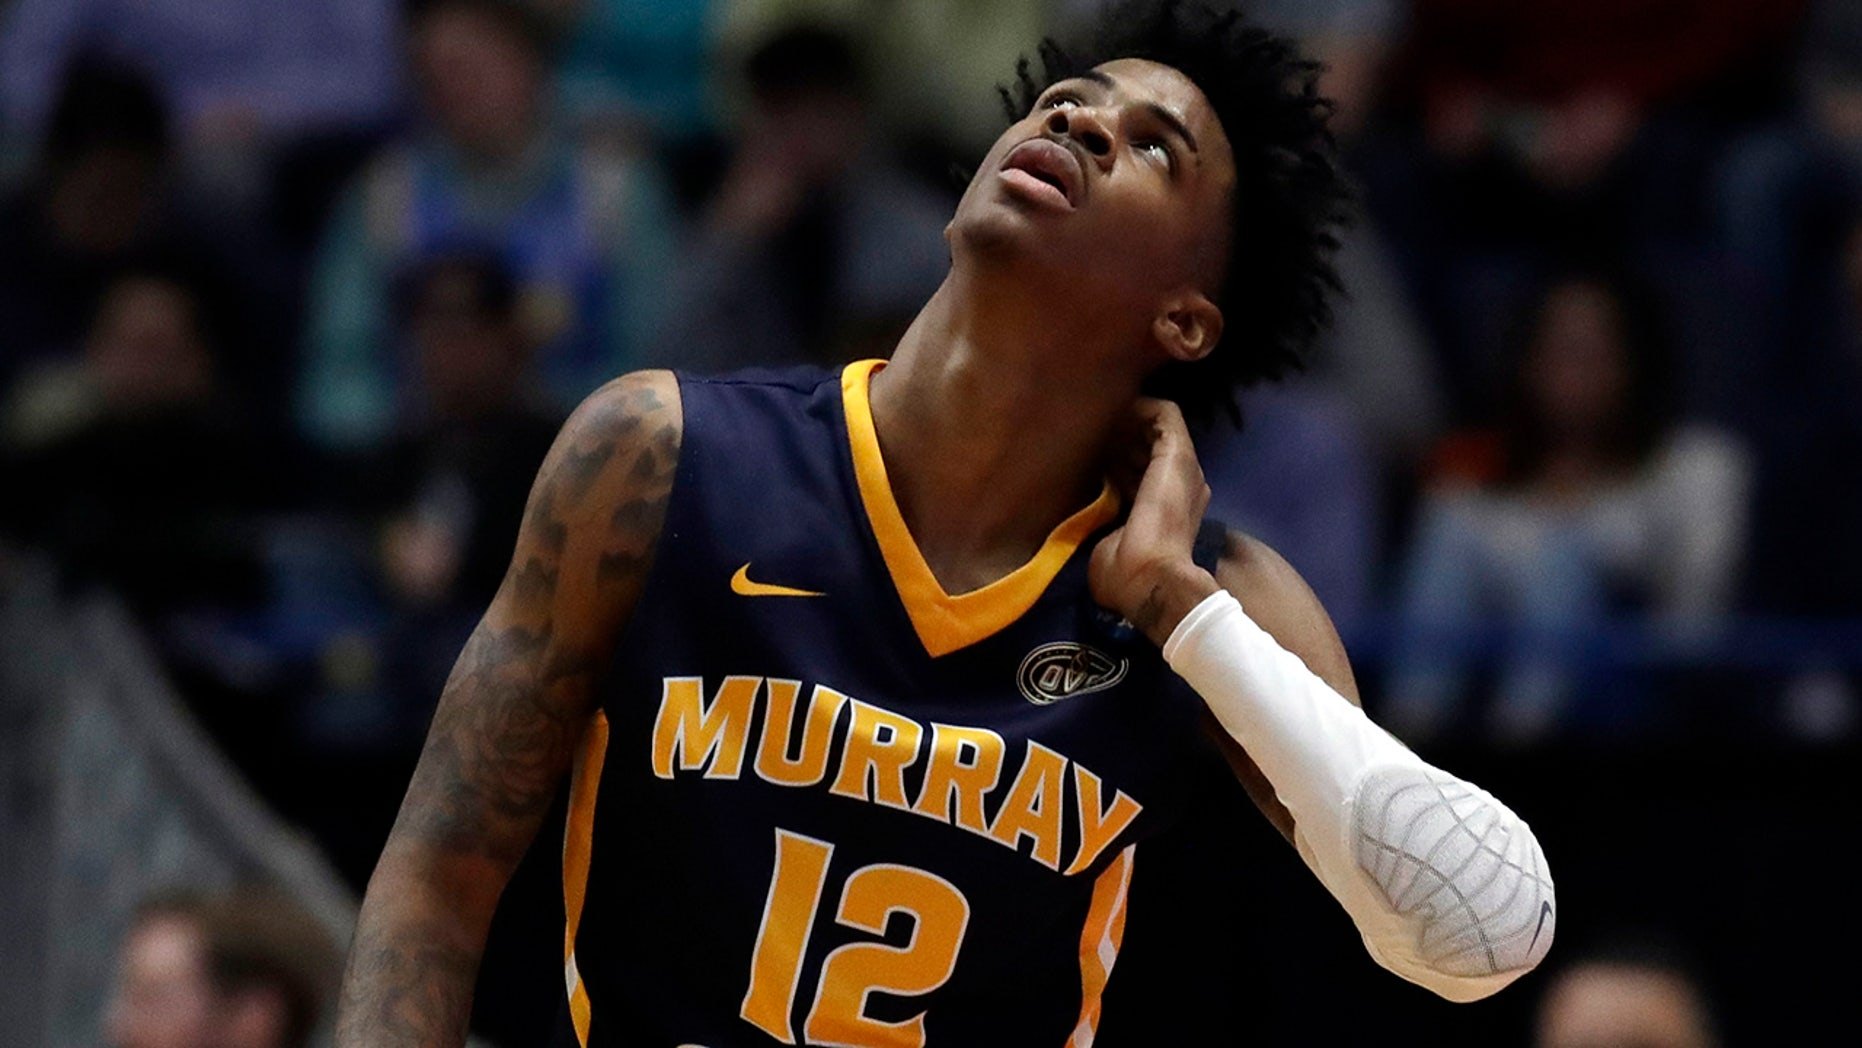 Murray State's Ja Morant (12) looks adult during a scoreboard during a initial half of a second-round men's college basketball diversion opposite Florida State in a NCAA Tournament, Saturday, Mar 23, 2019, in Hartford, Conn. (Associated Press)